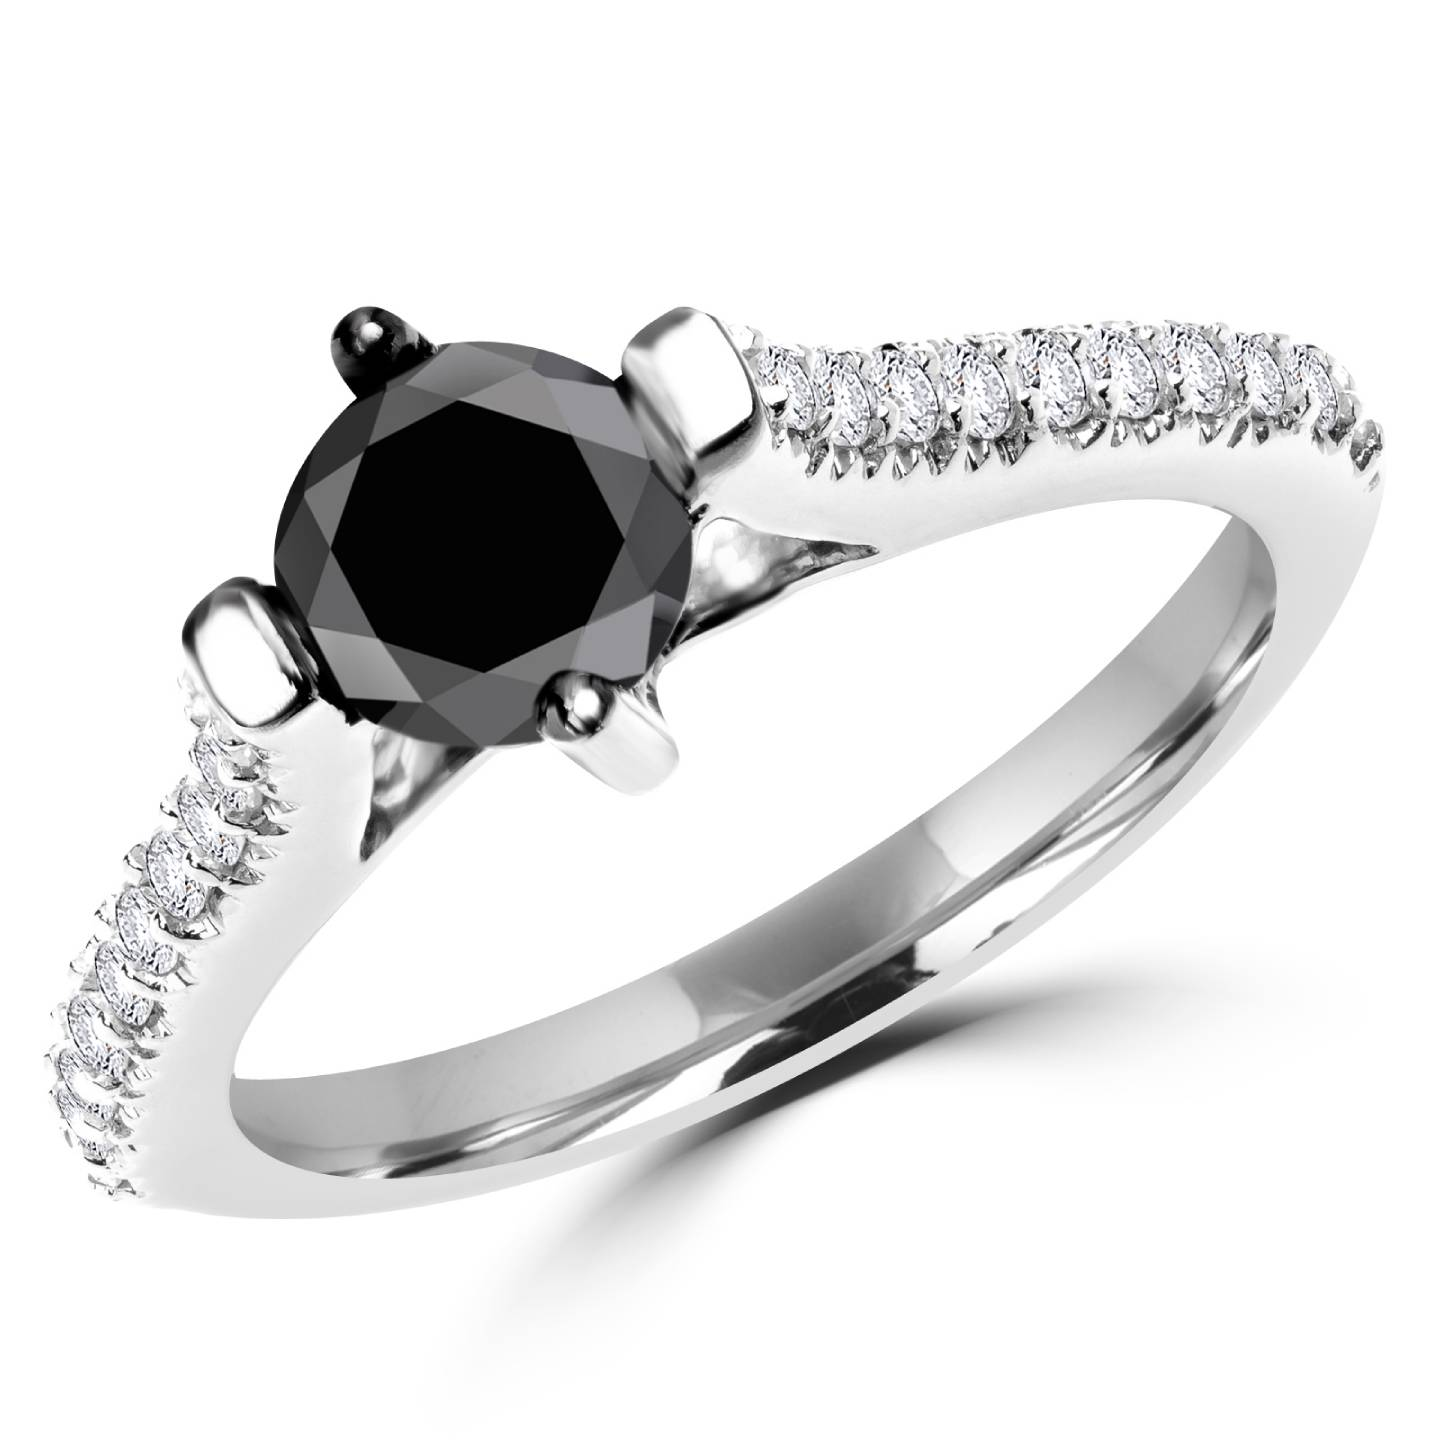 1 1/10 CTW Round Black and White Diamond Engagement Ring in 14K White Gold (MD130013) - image 2 of 2